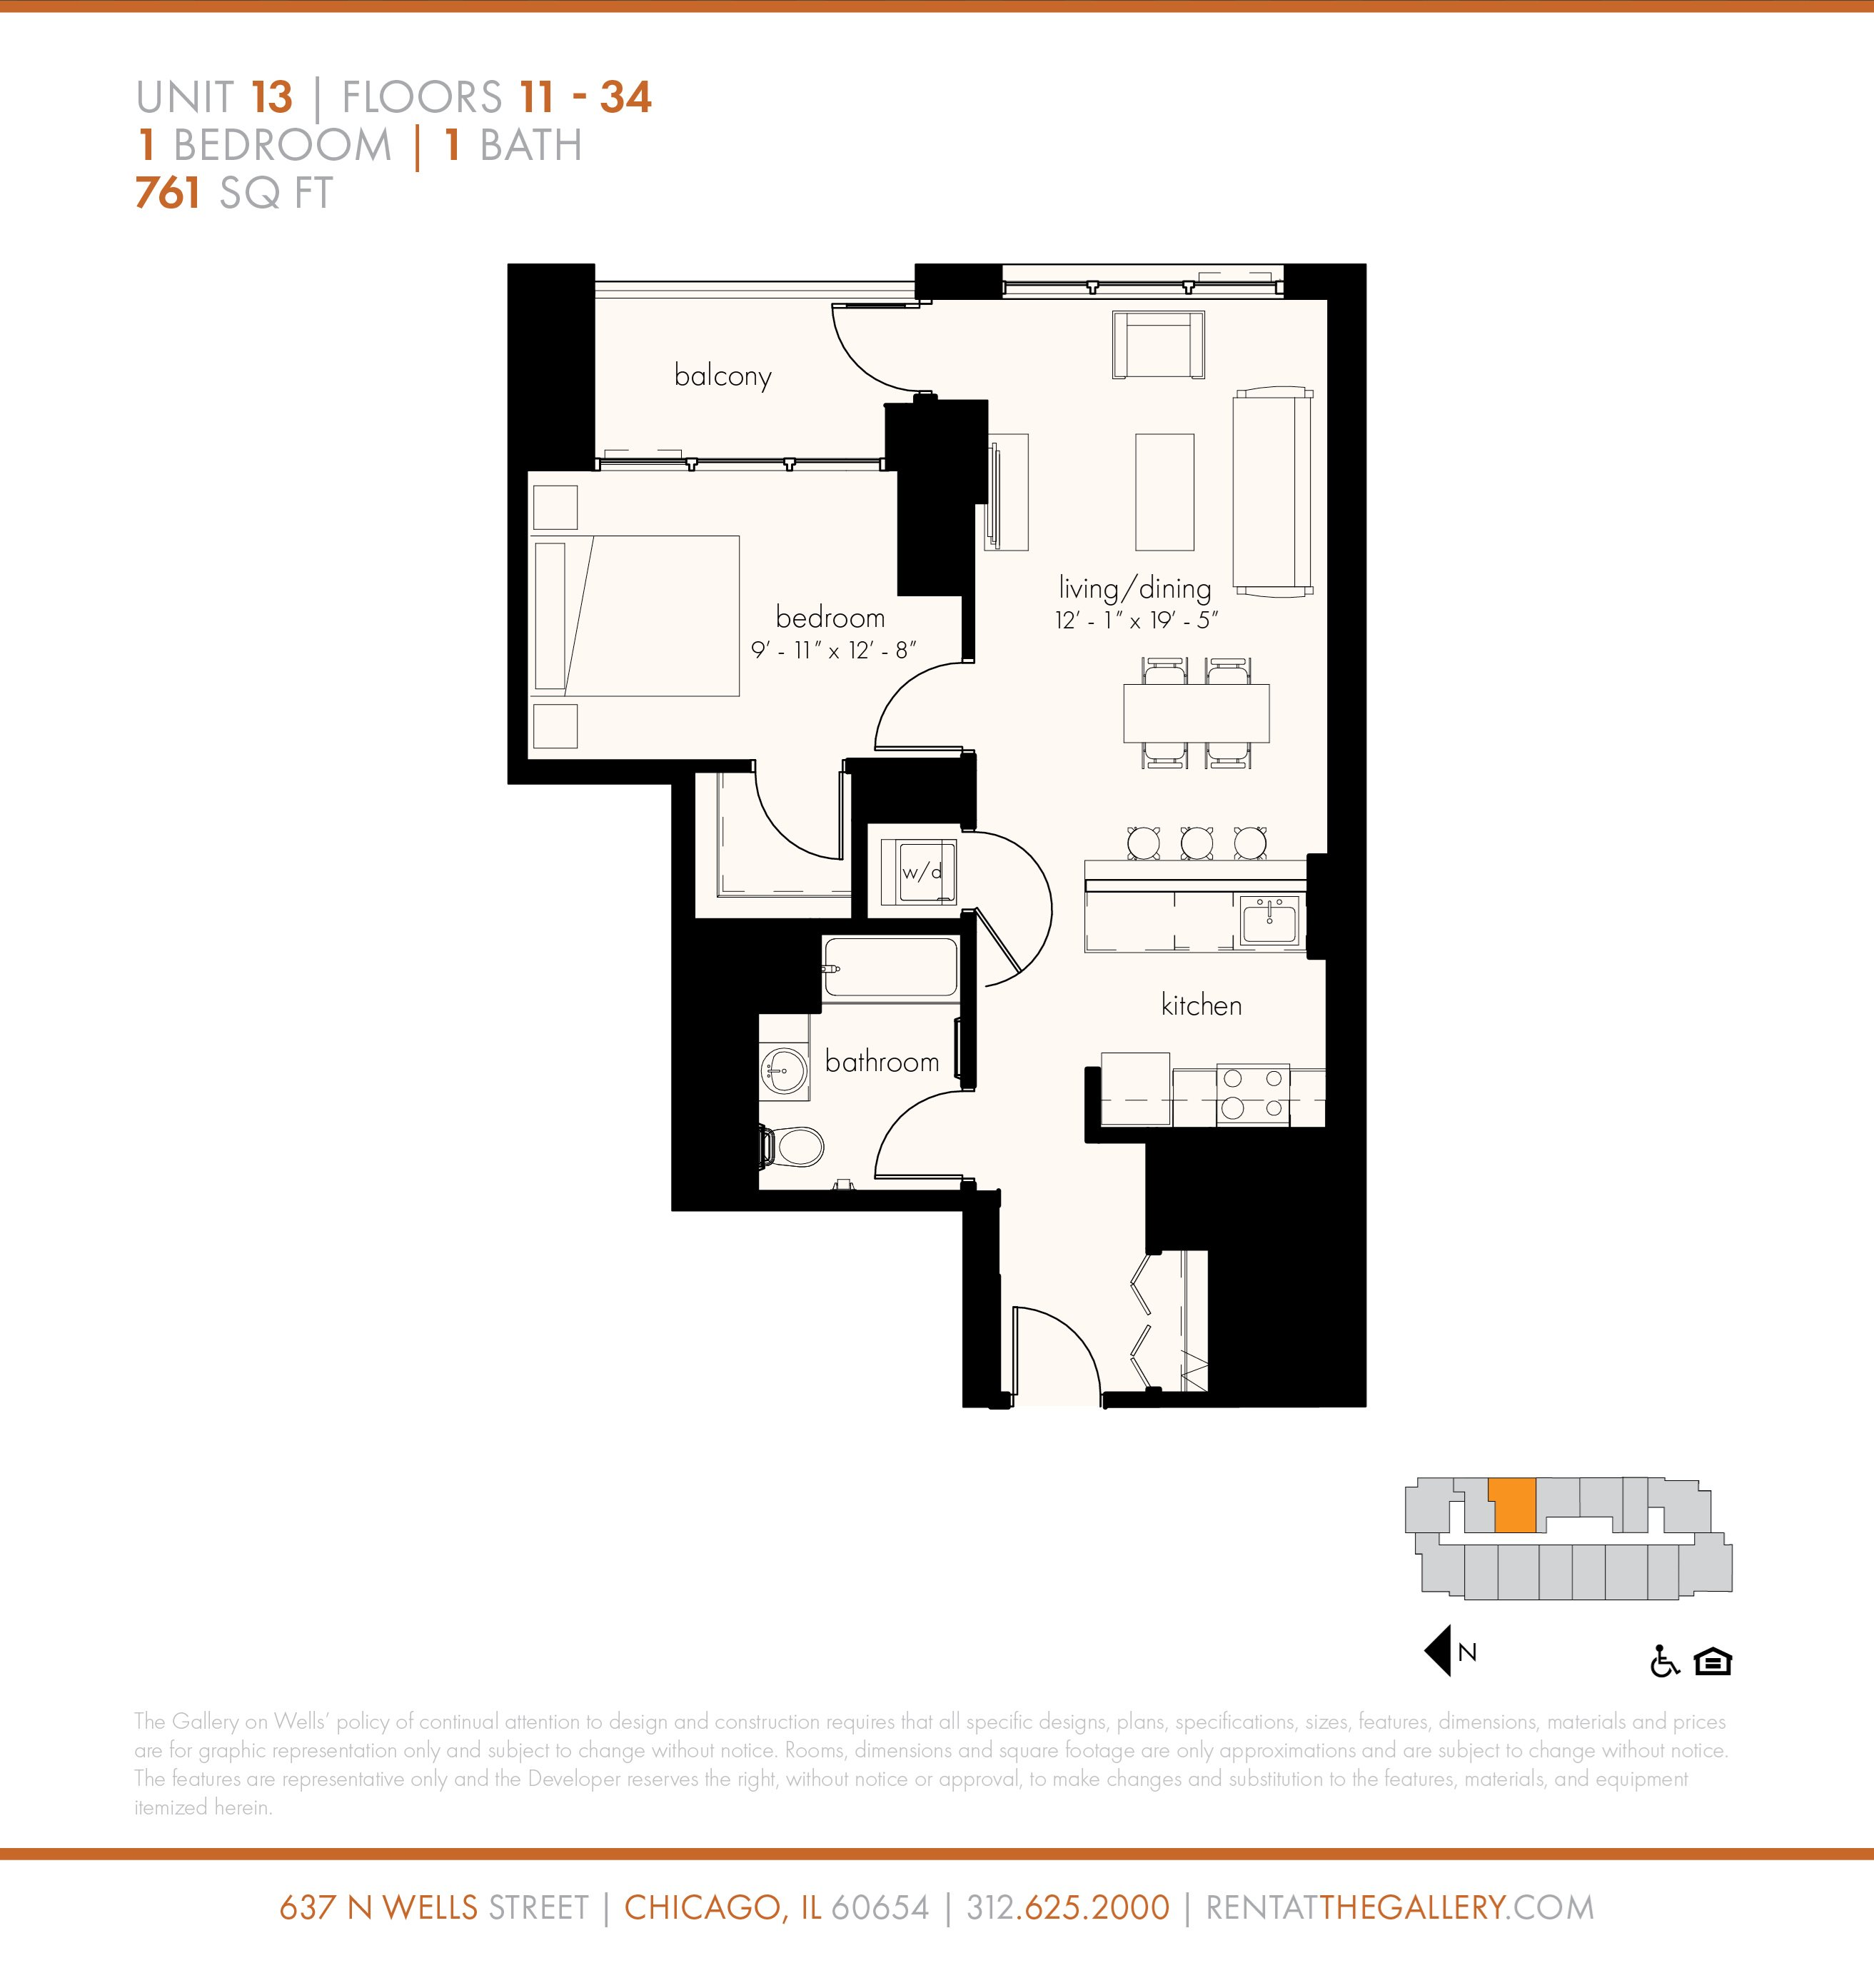 One Bedroom (761 sf) Floor Plan 6